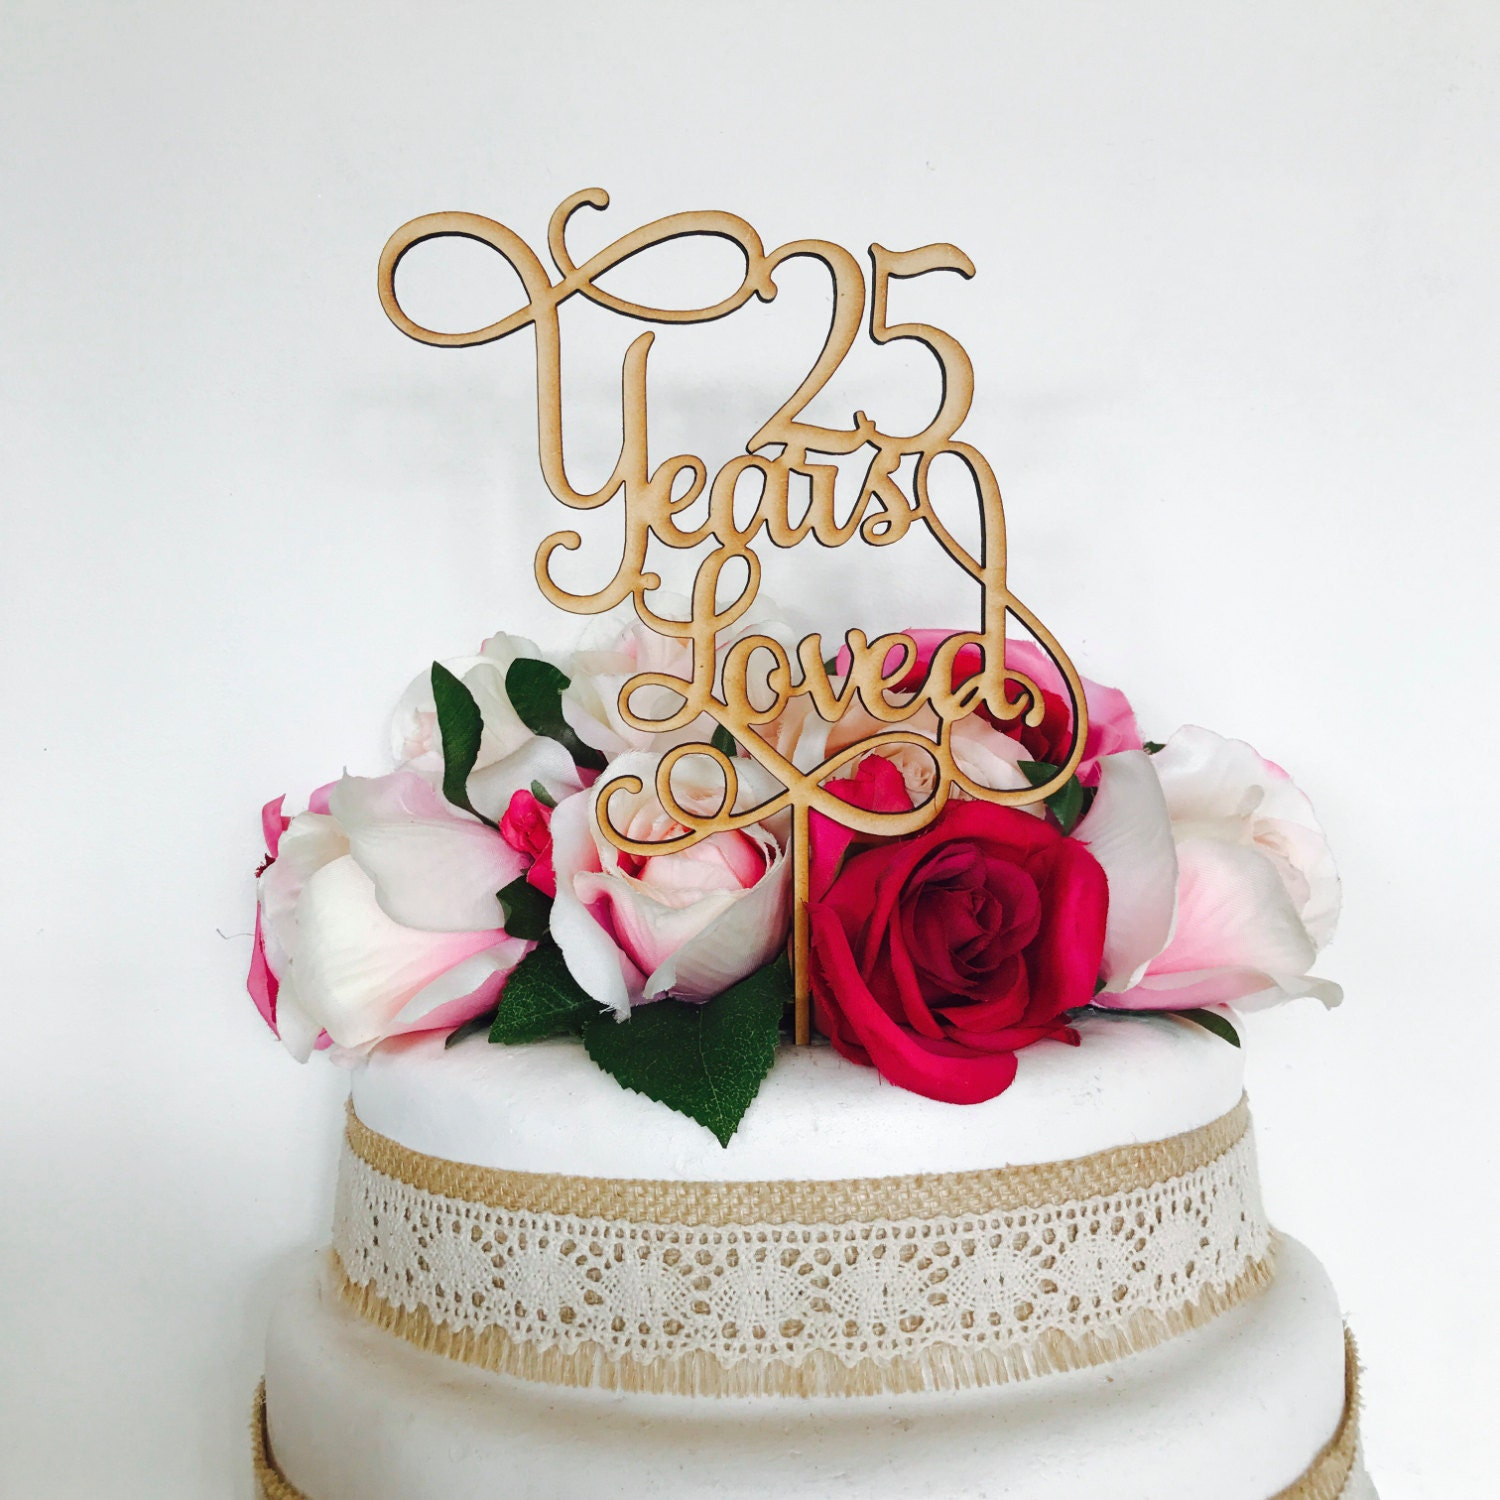 25 Years Loved Cake Topper Anniversary Cake Topper Cake Decoration ...